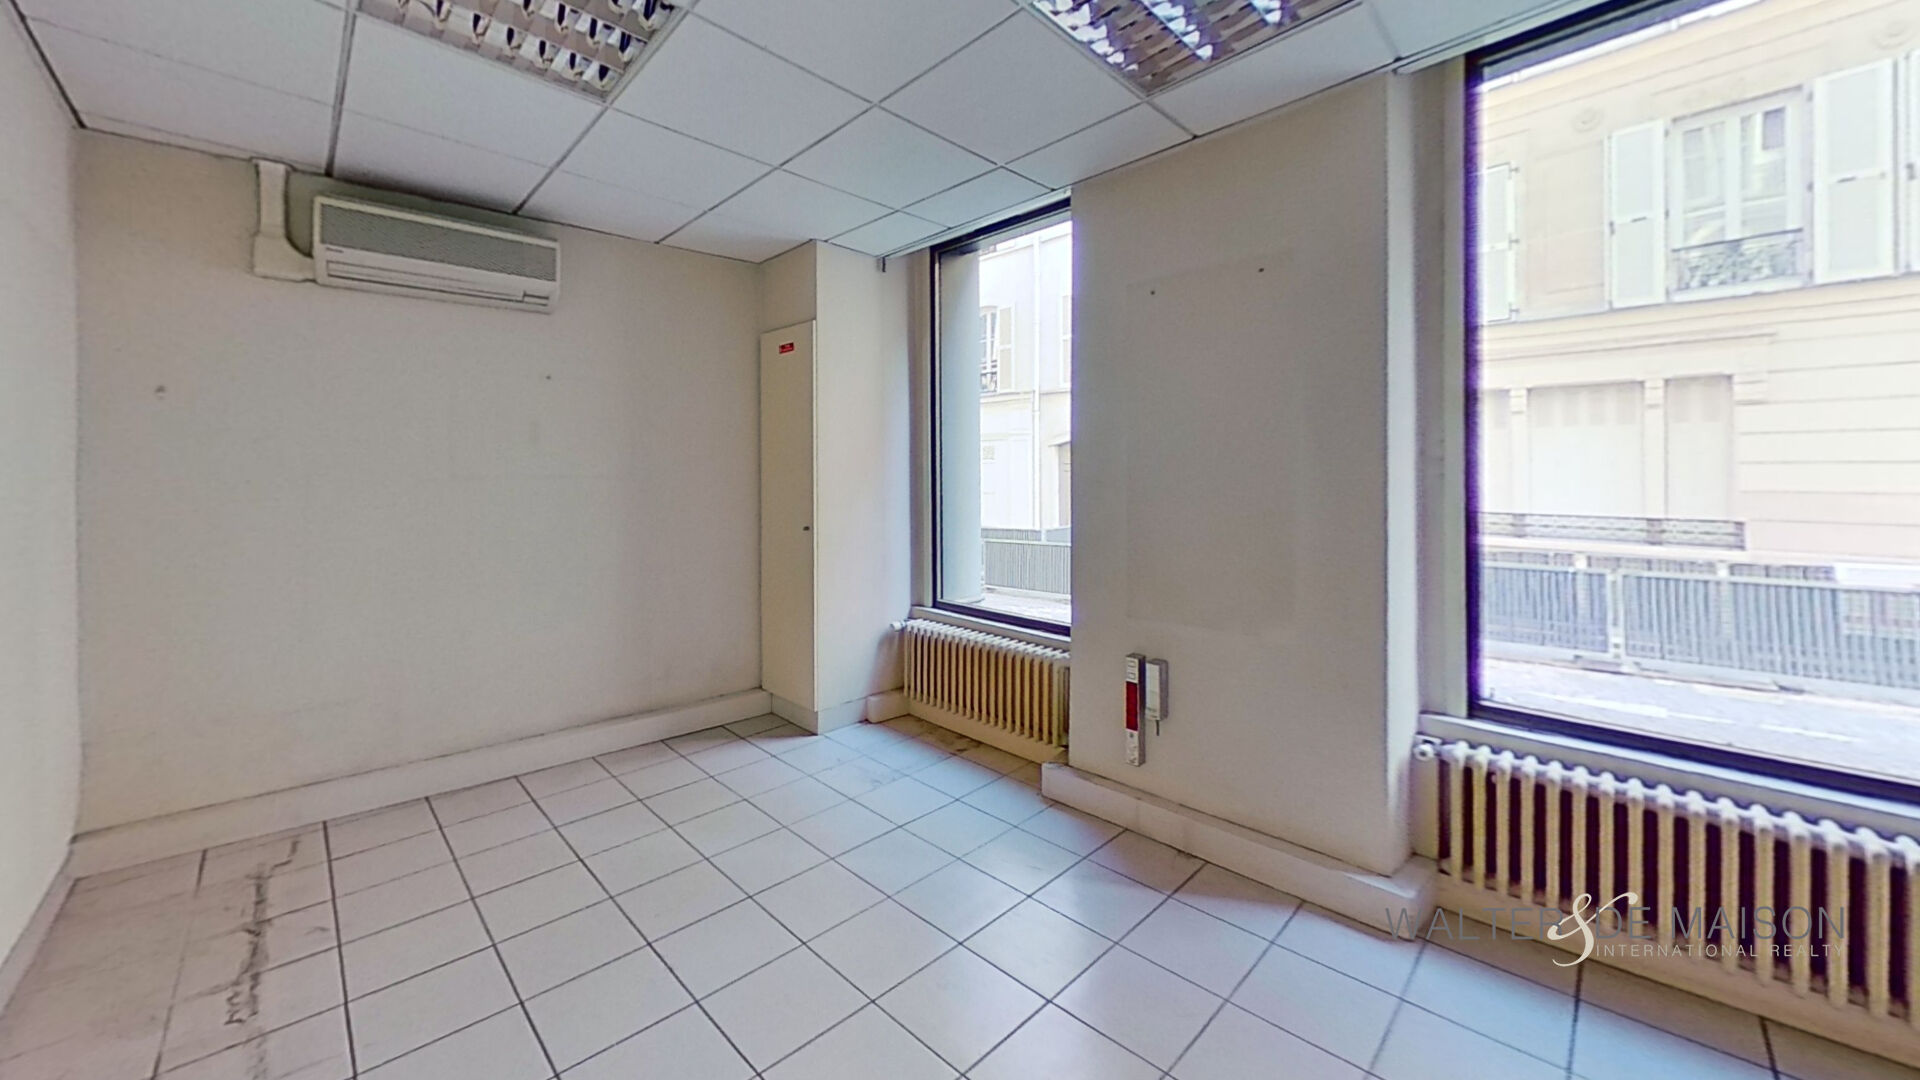 Local professionnel 170 m²